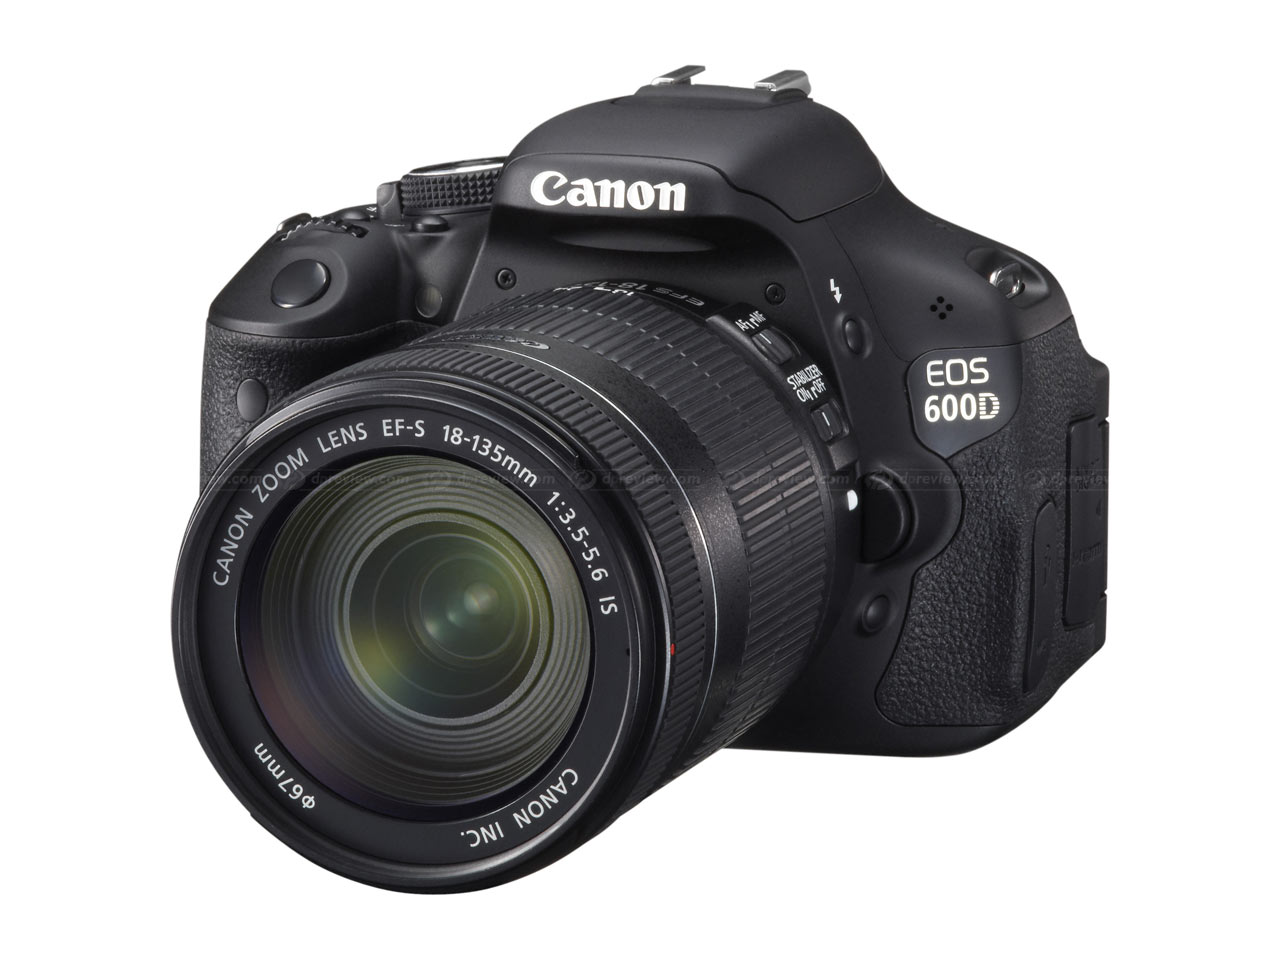 Capture every moment of your adventure with the new EOS 600D